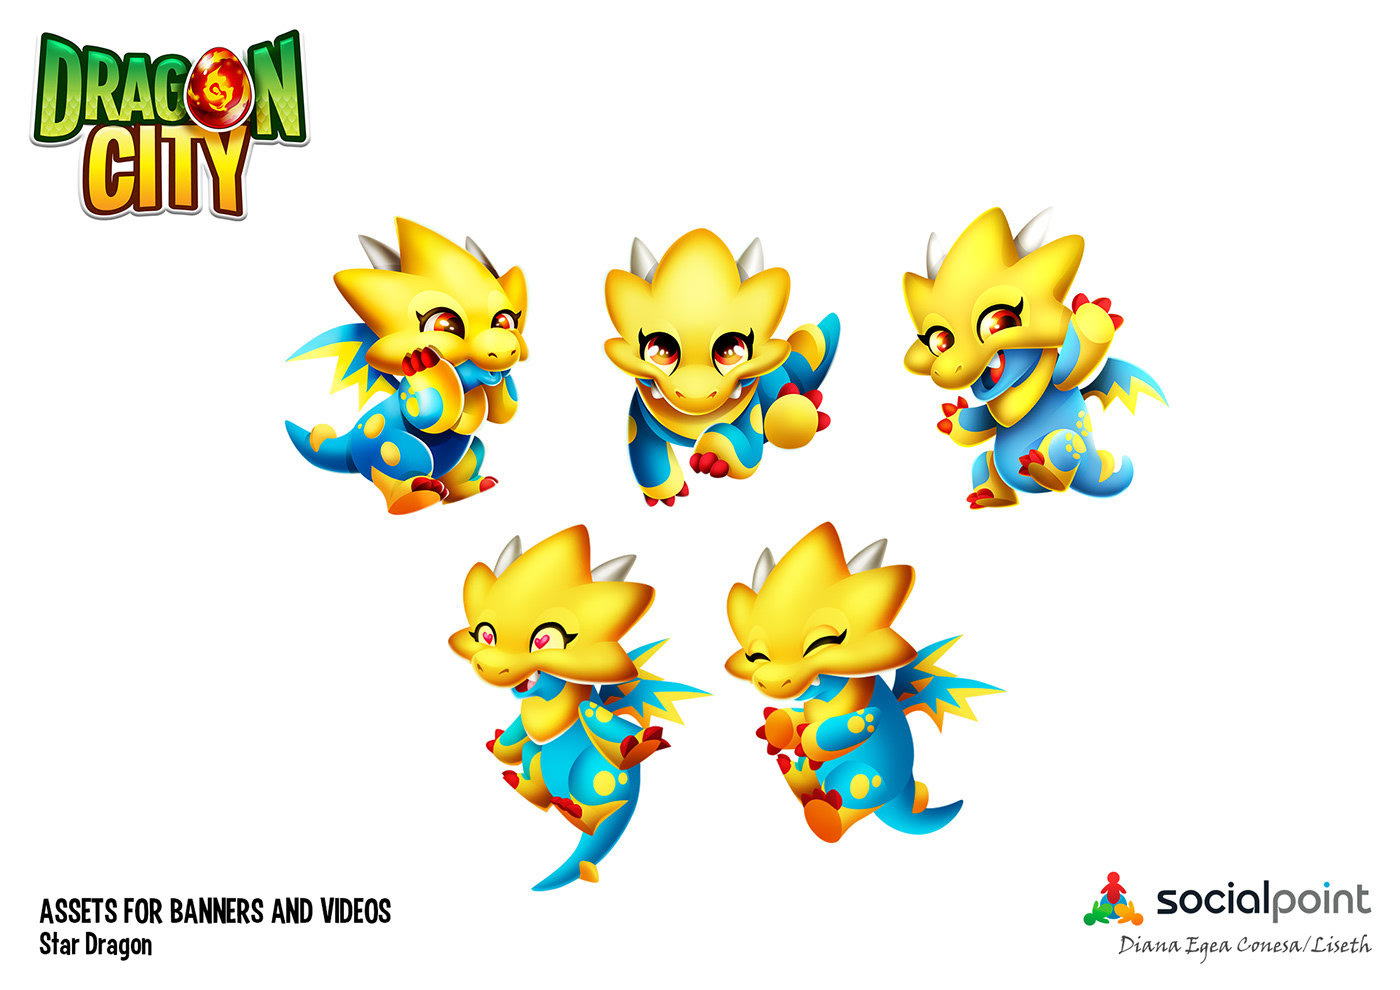 Dragon City Social Point videogame characters dragons flame star